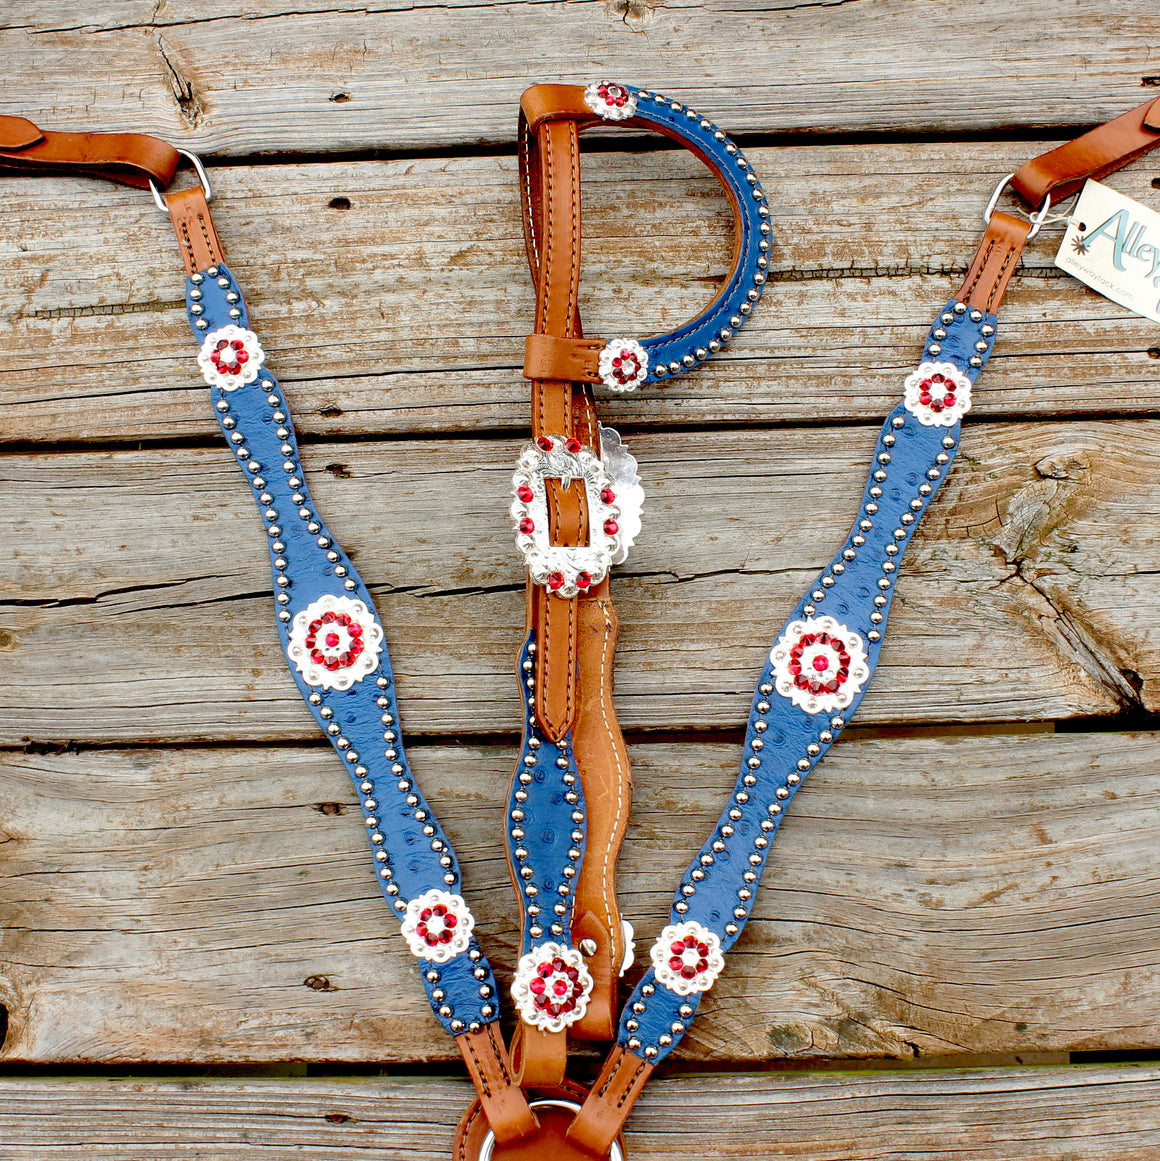 Royal Blue Ostrich/Tan Leather One Ear Tack Set w/Red & Clear Crystal Rhinestone Conchos